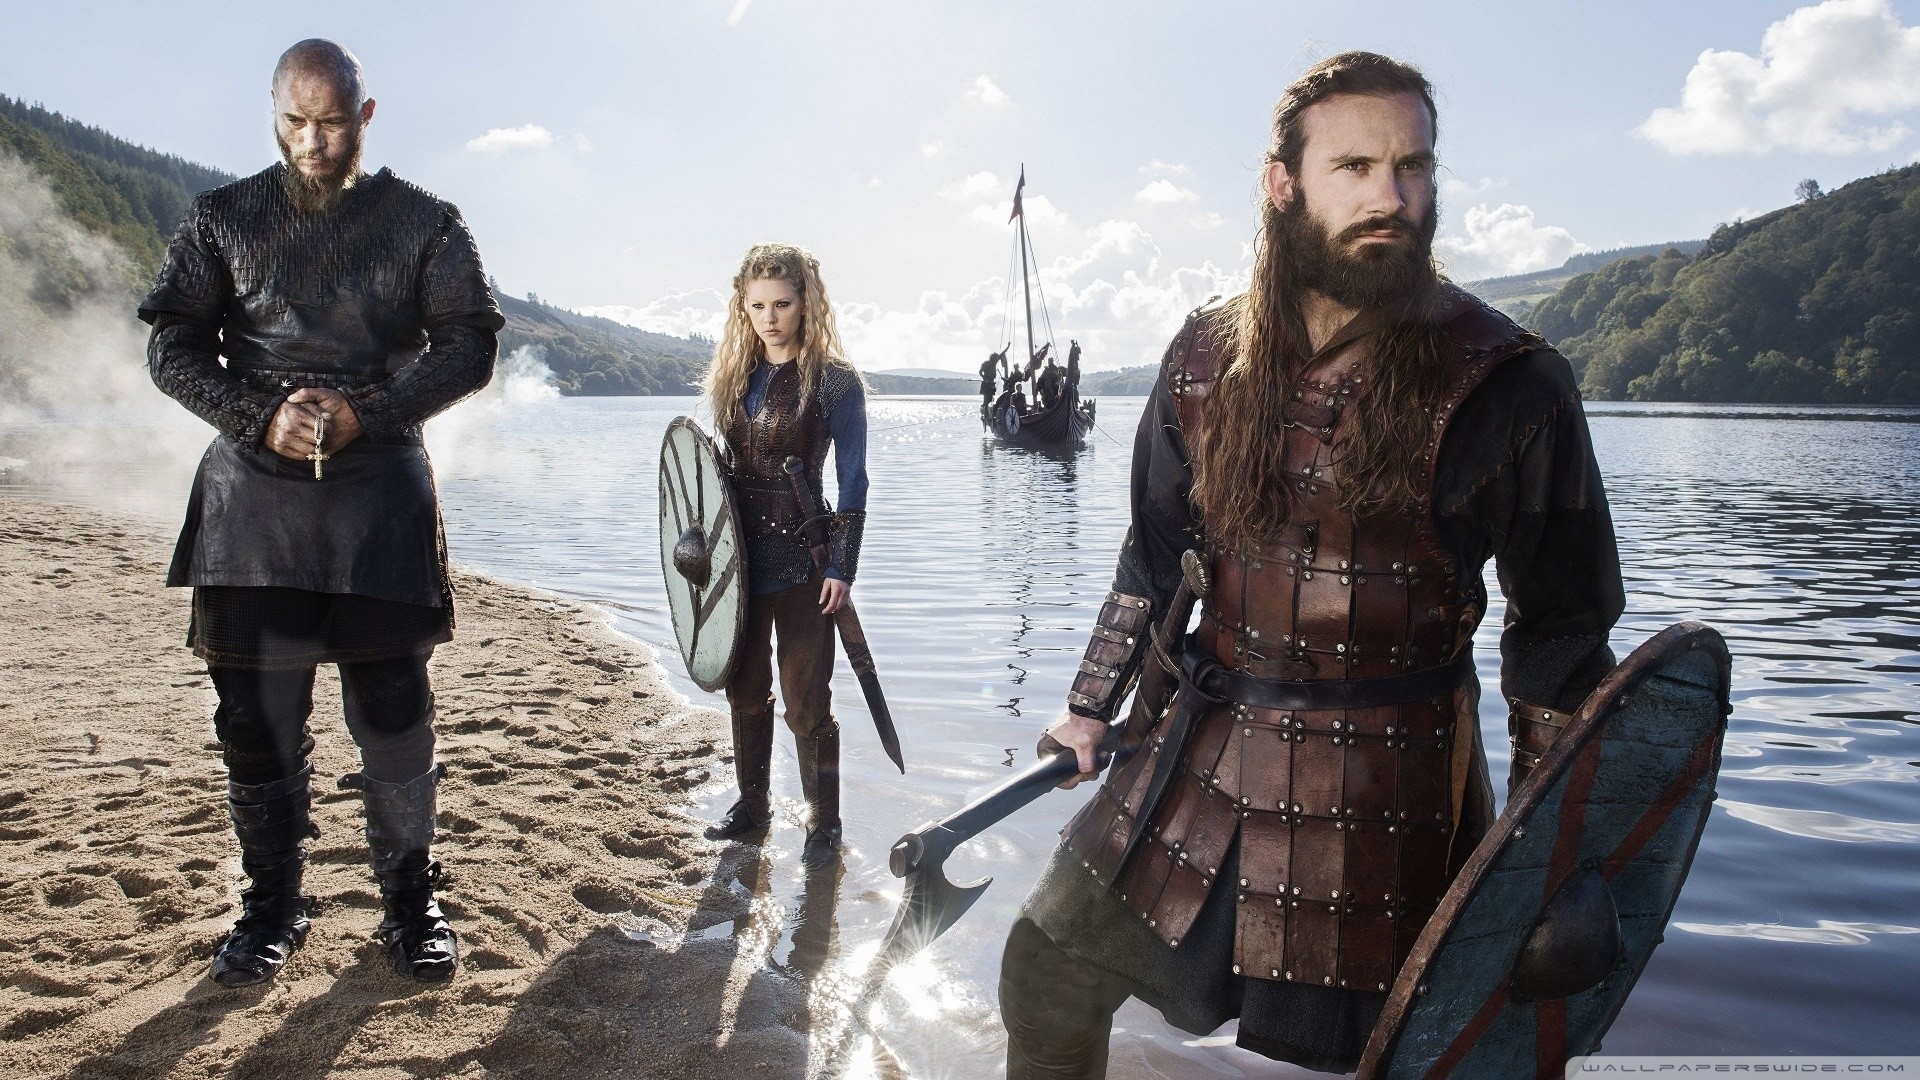 Vikings Wallpaper for Computer (74+ images)